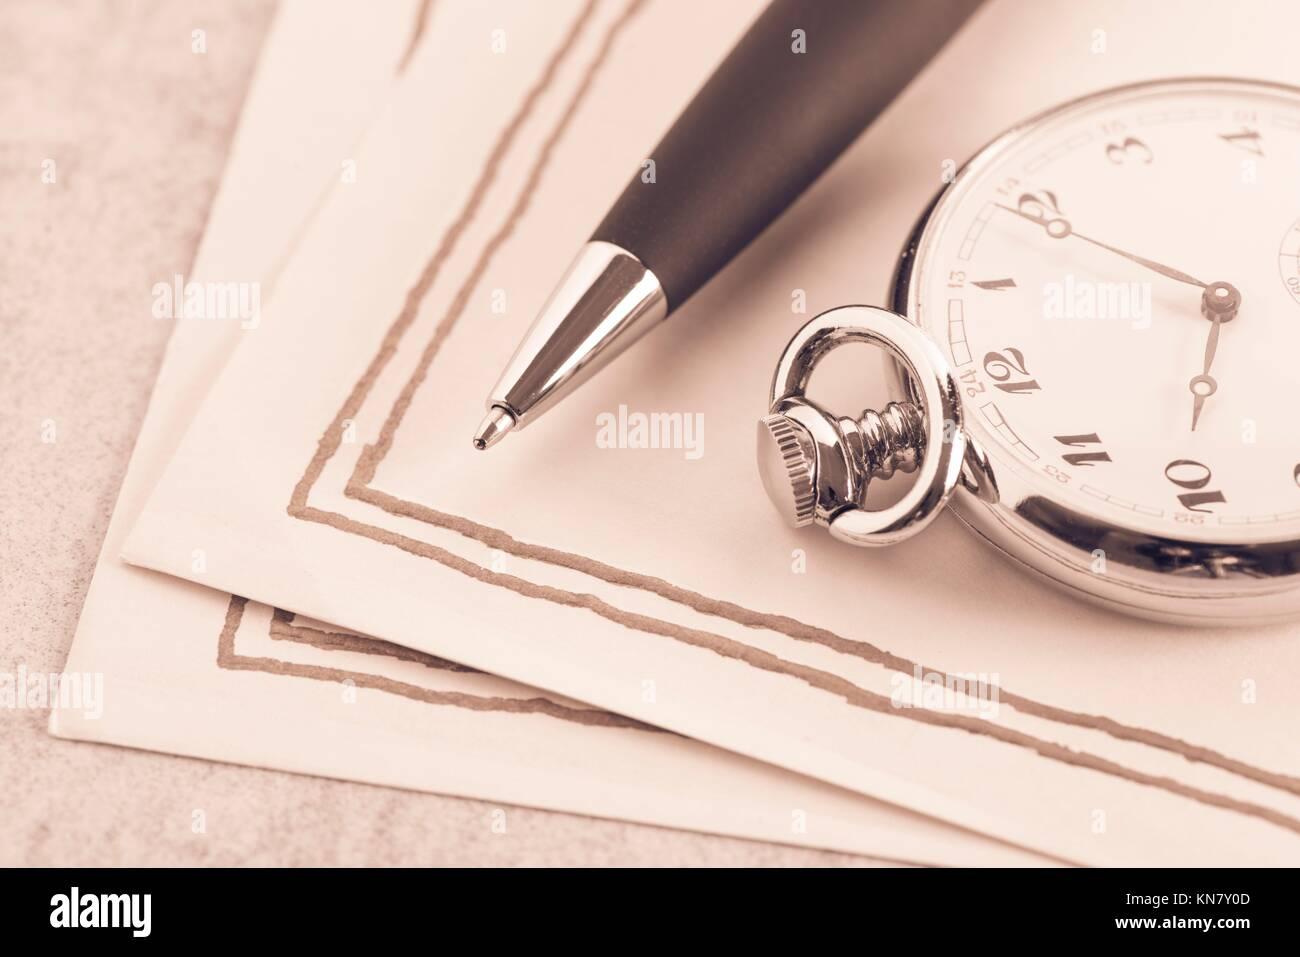 Letter paper, vintage pocket watch and pen. Concept of writing, correspondence and old fashioned communication. - Stock Image